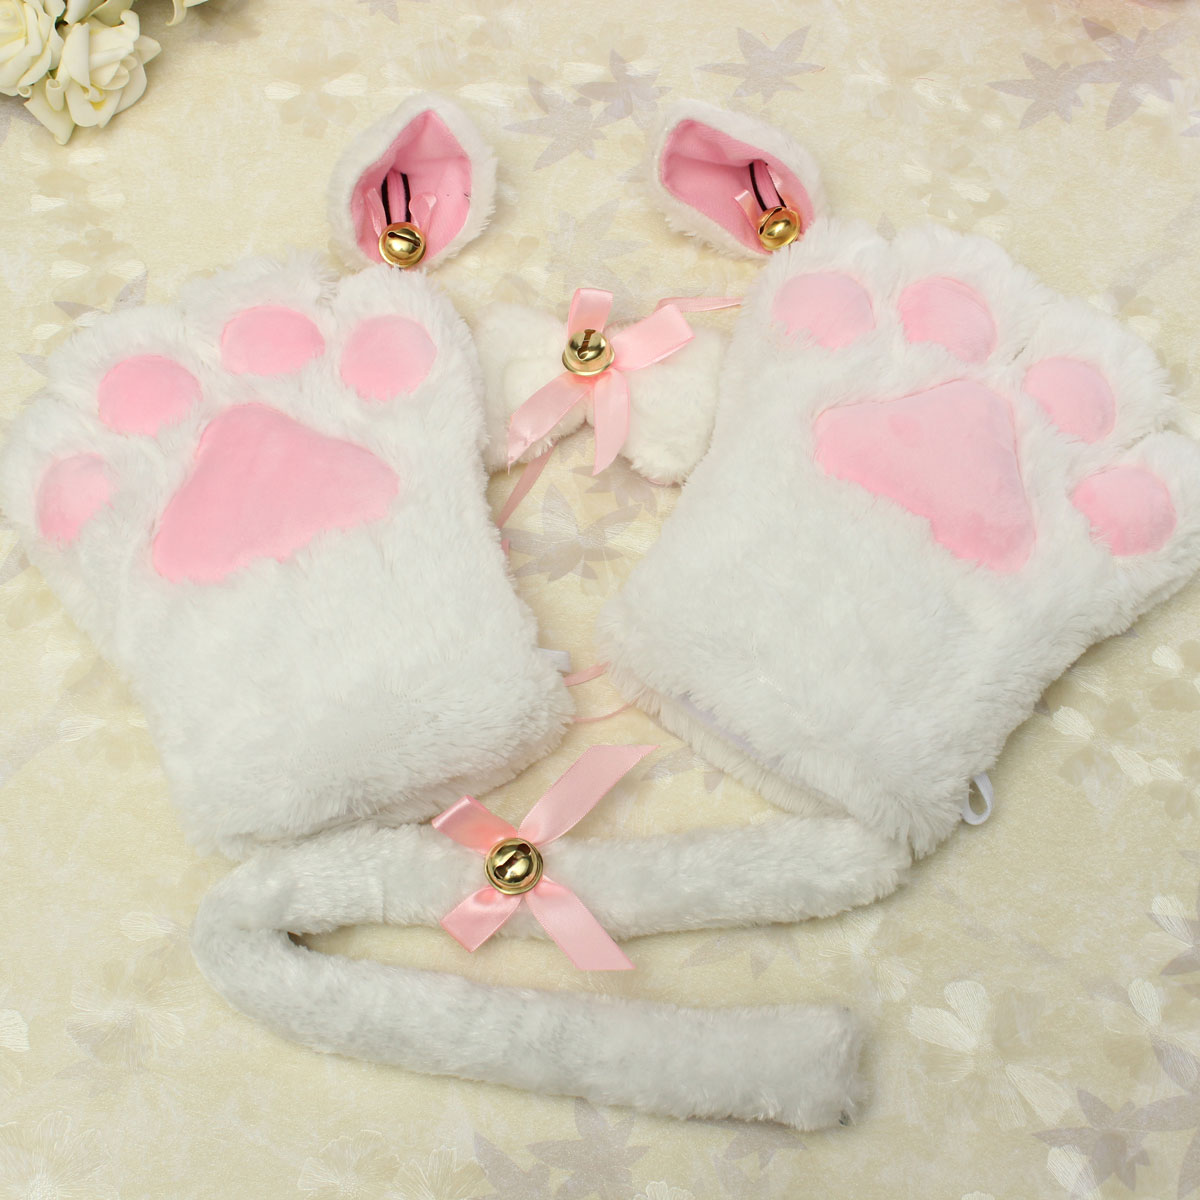 Sexy Flutty Cat Maid Cosplay Anime Costume Plush Gloves Paw Ear Tail Tie Party